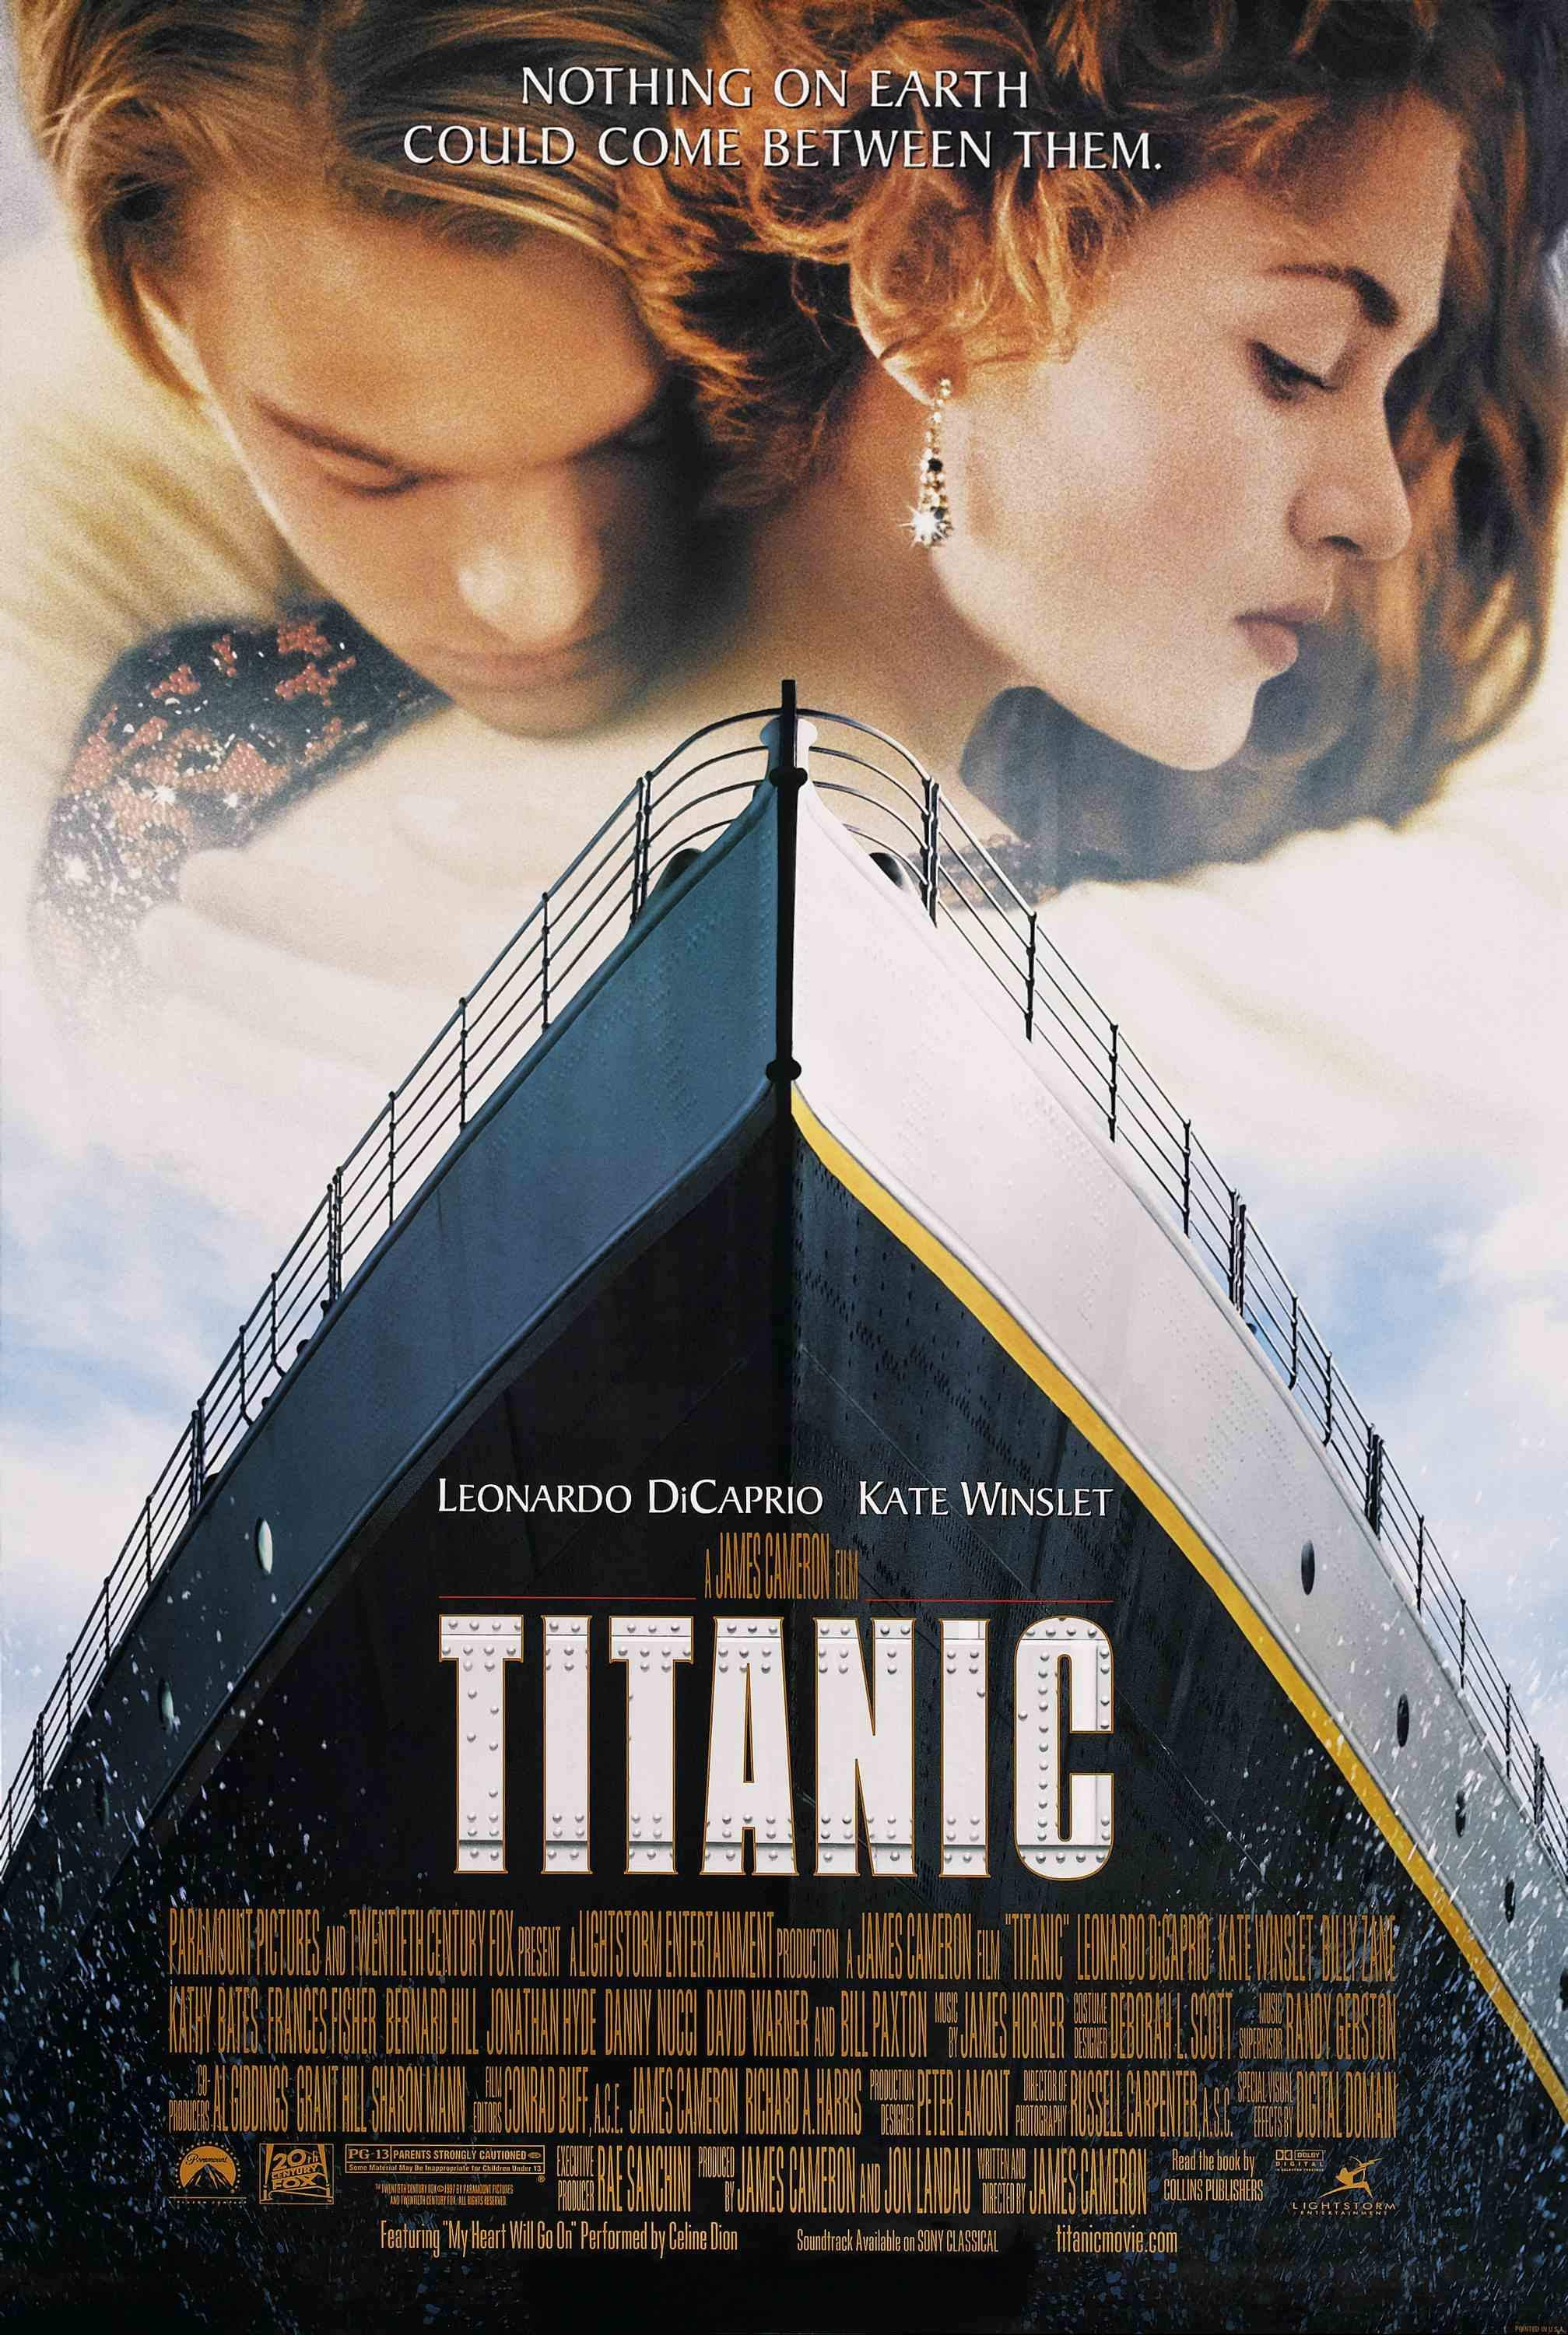 Titanic 1997 Film The Jh Movie Collection S Official Wiki Fandom